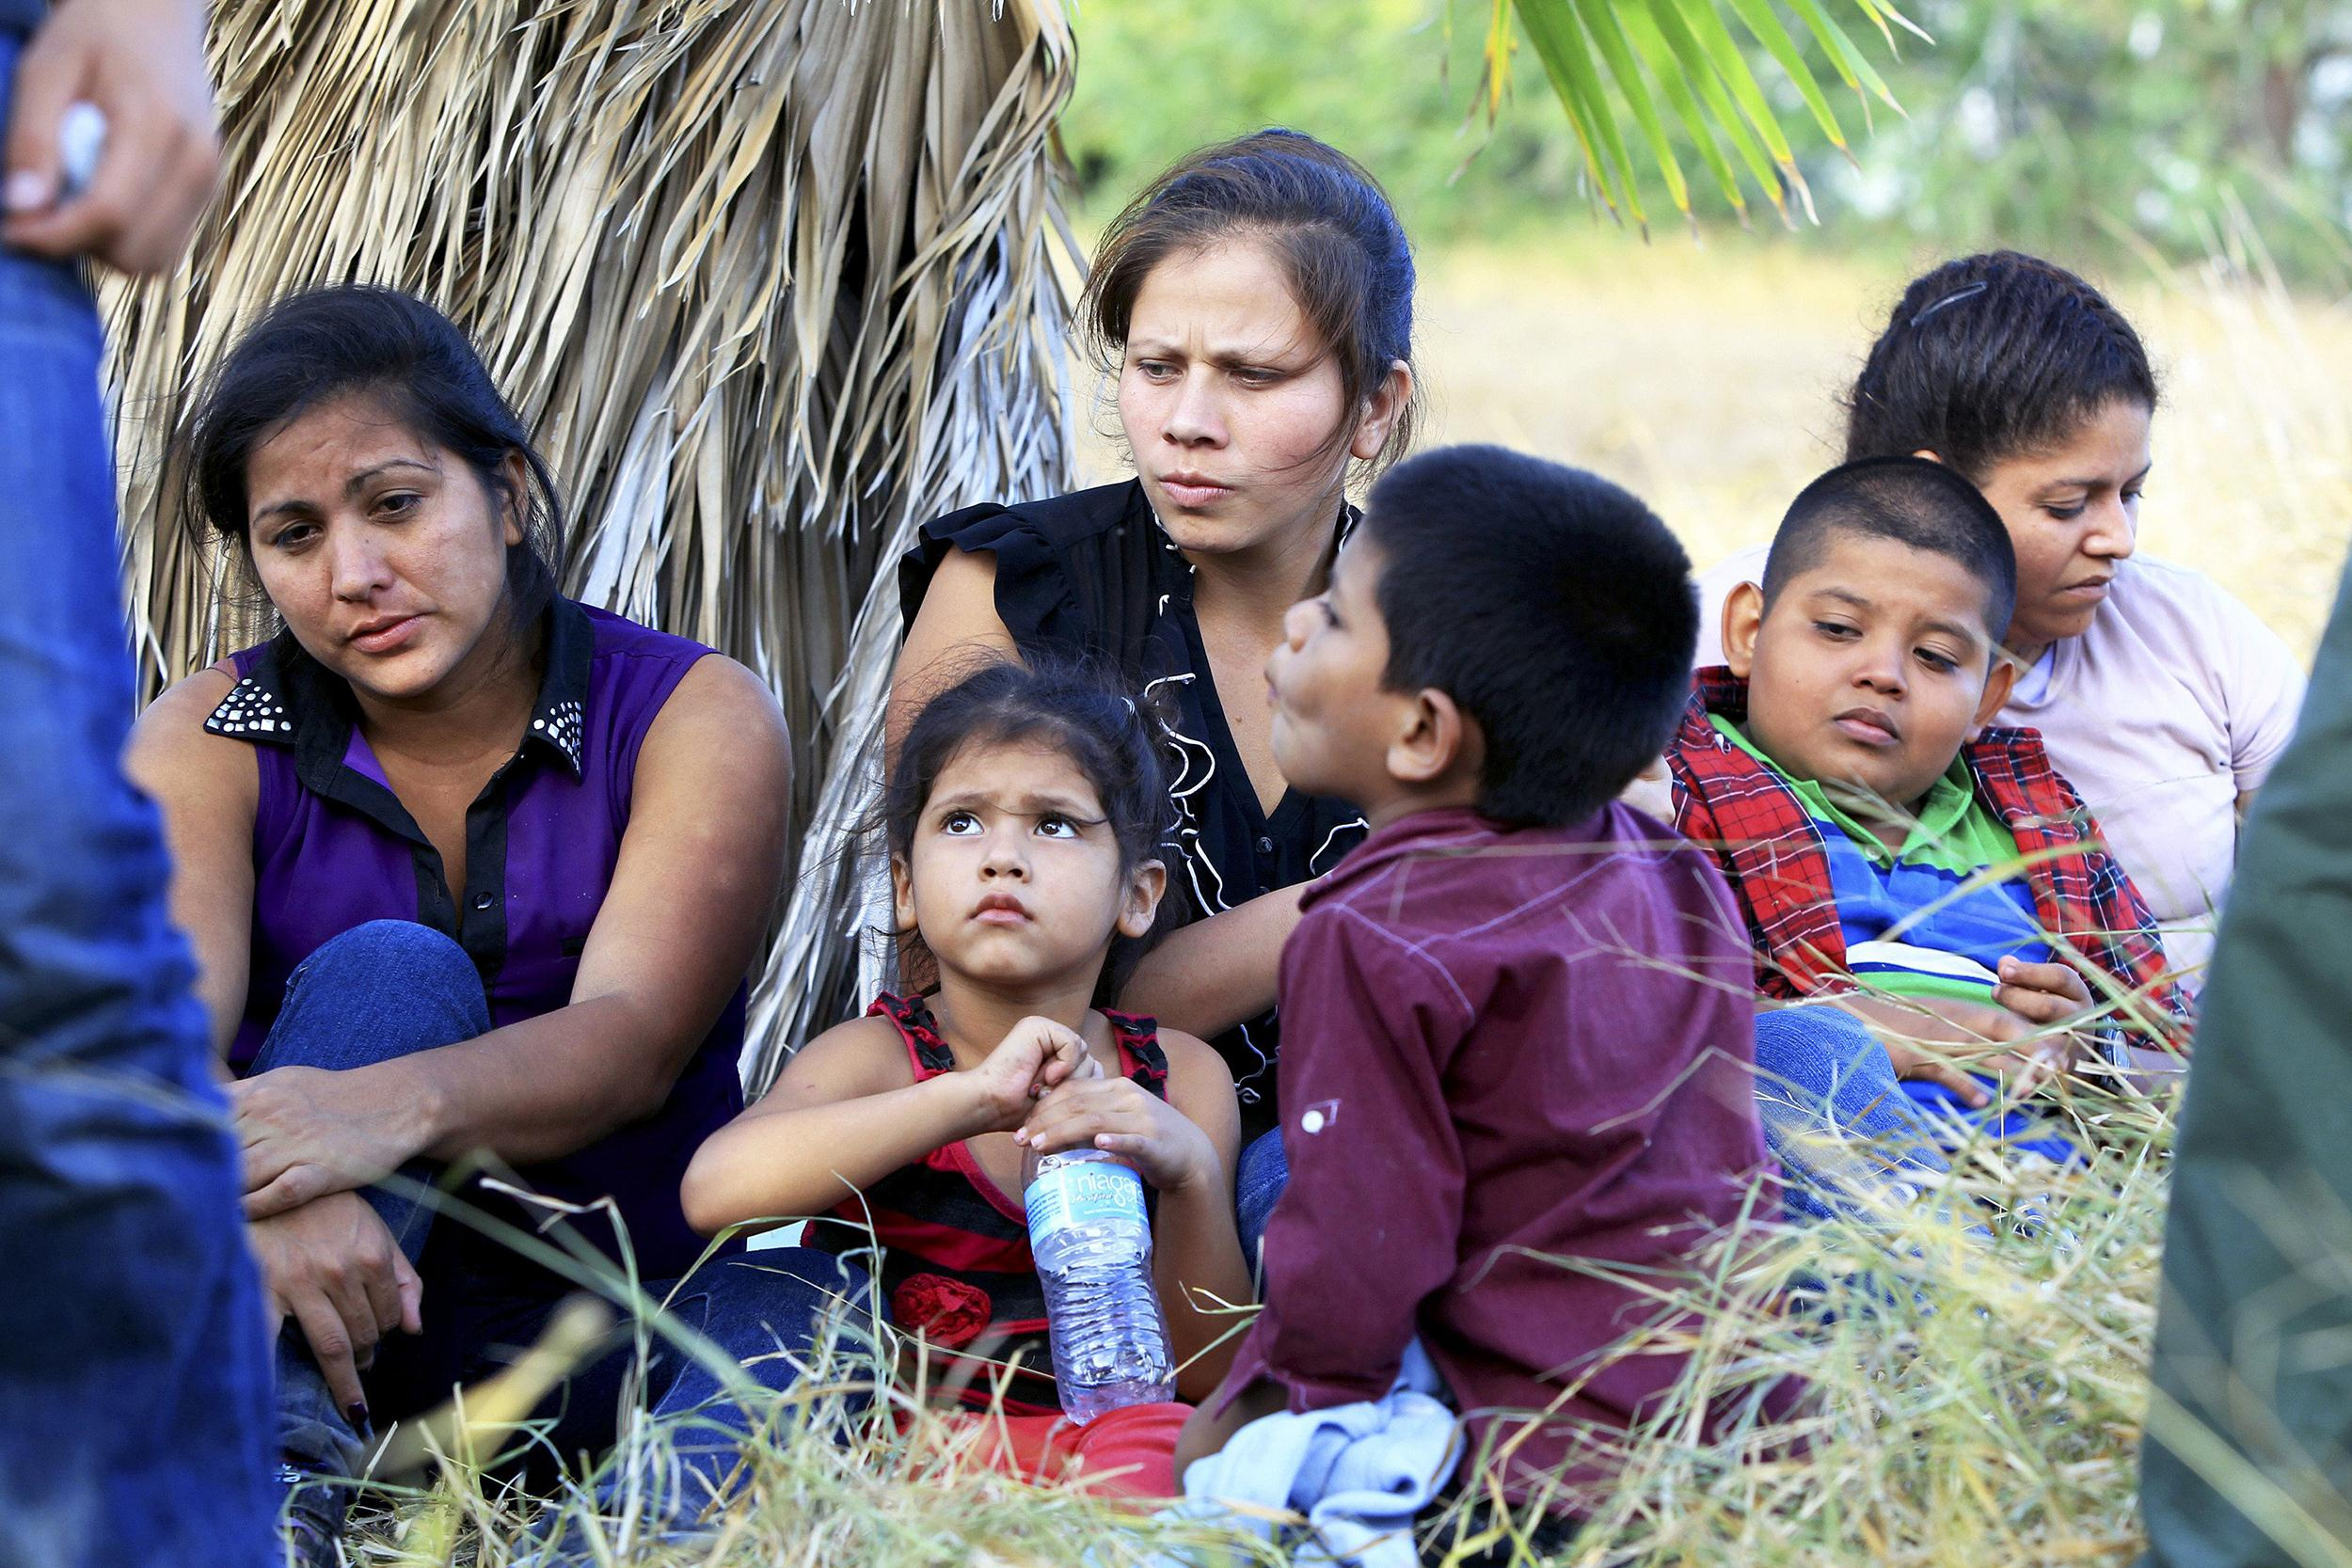 Image: A group of 22 migrants, mostly women and children from Honduras and Guatemala, in custody just after crossing the Rio Grande near McAllen, Texas.